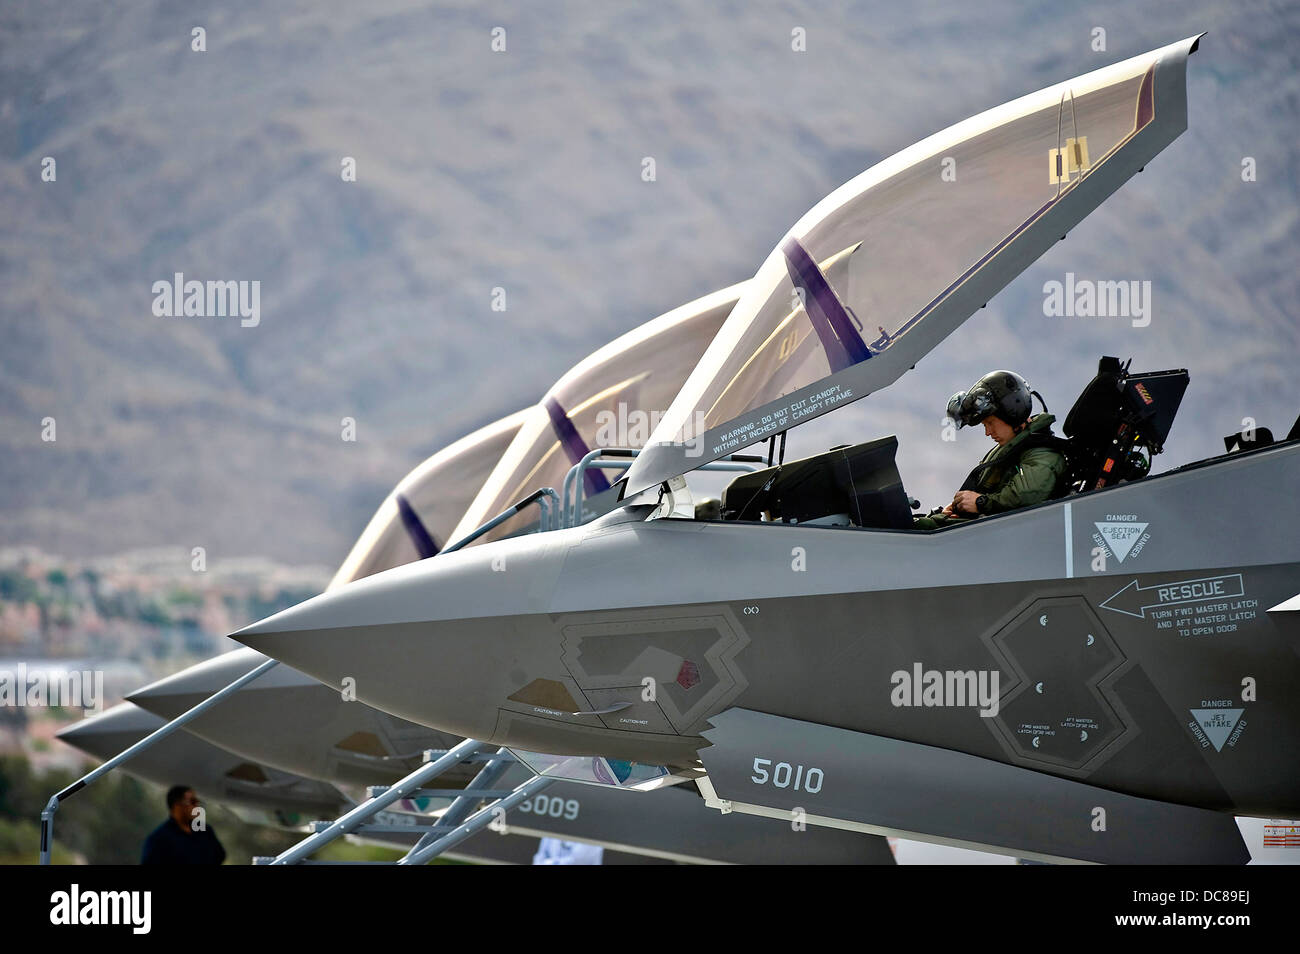 US Air Force Capt. Brad Matherne conducts preflight checks inside an F-35A Lightning II stealth fighter aircraft - Stock Image